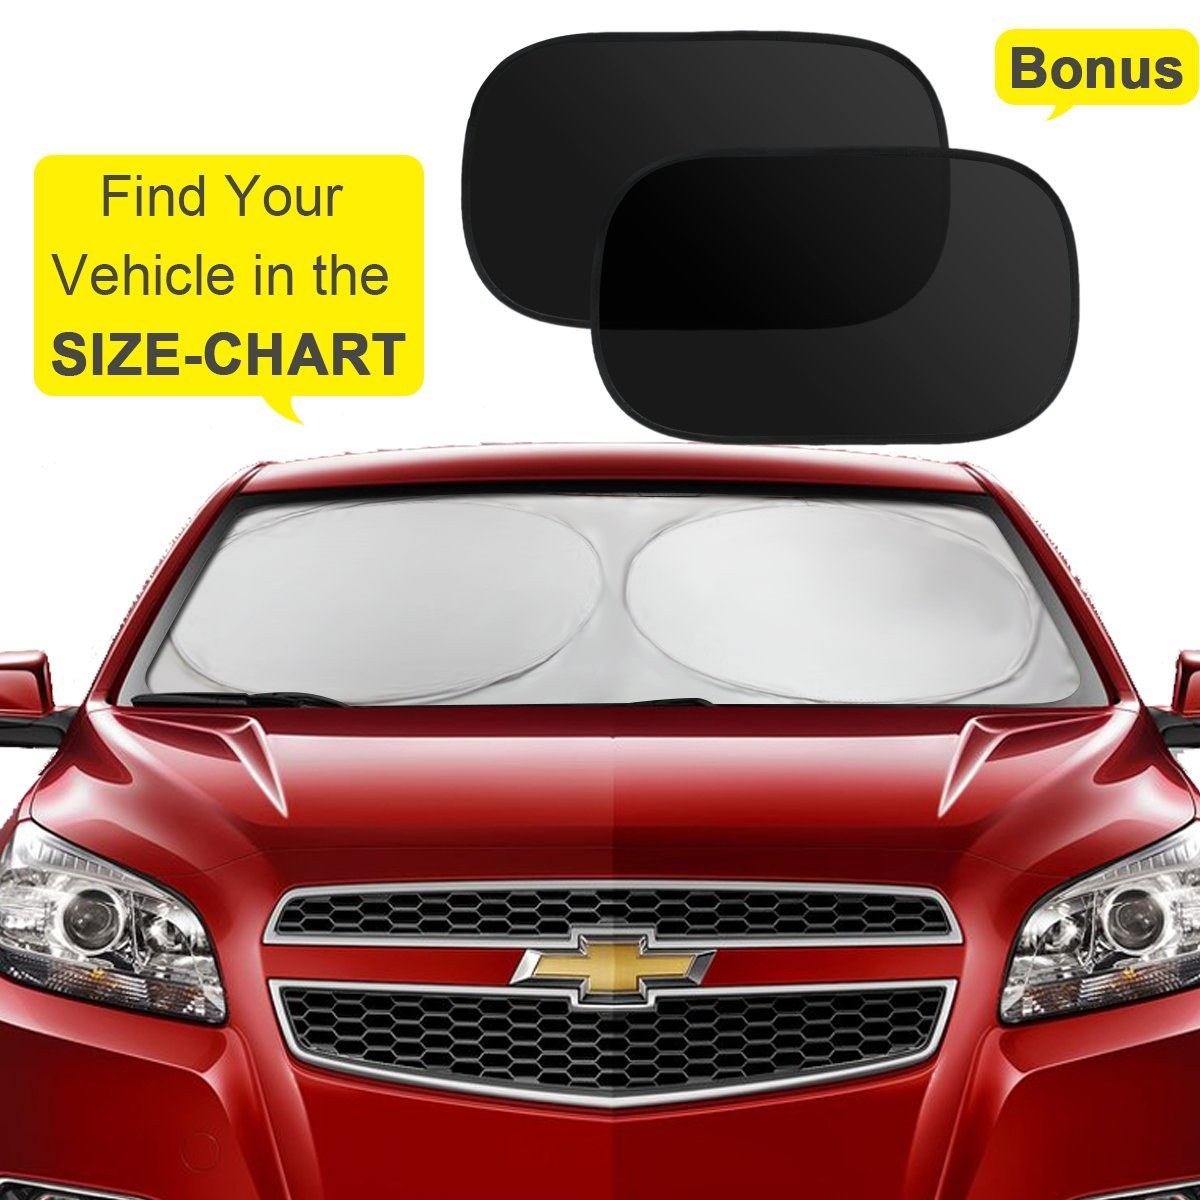 Windscreen Sun shade, KMMIN Car Sun Shade Keeps Vehicle Cooler up to 50%, Luxurious 210T Fabric Blocks 98% UV Heat Collapsible Car Sun Protector with 1 Front Window 2 Side Window Flexible Size for Car (160x89CM+2x50x30CM)